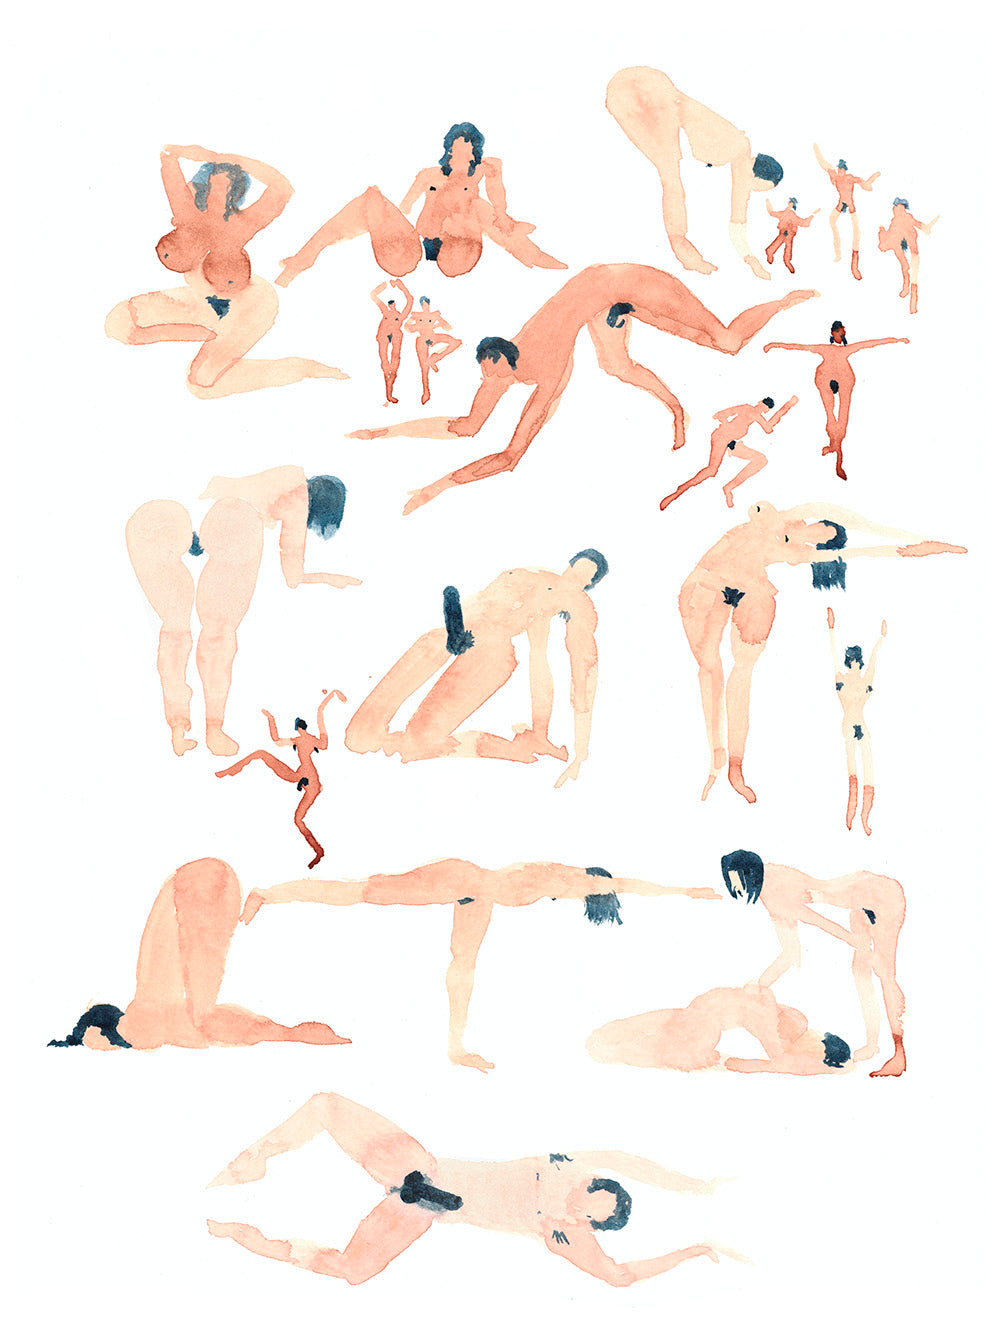 Yoga Figures - Original Art